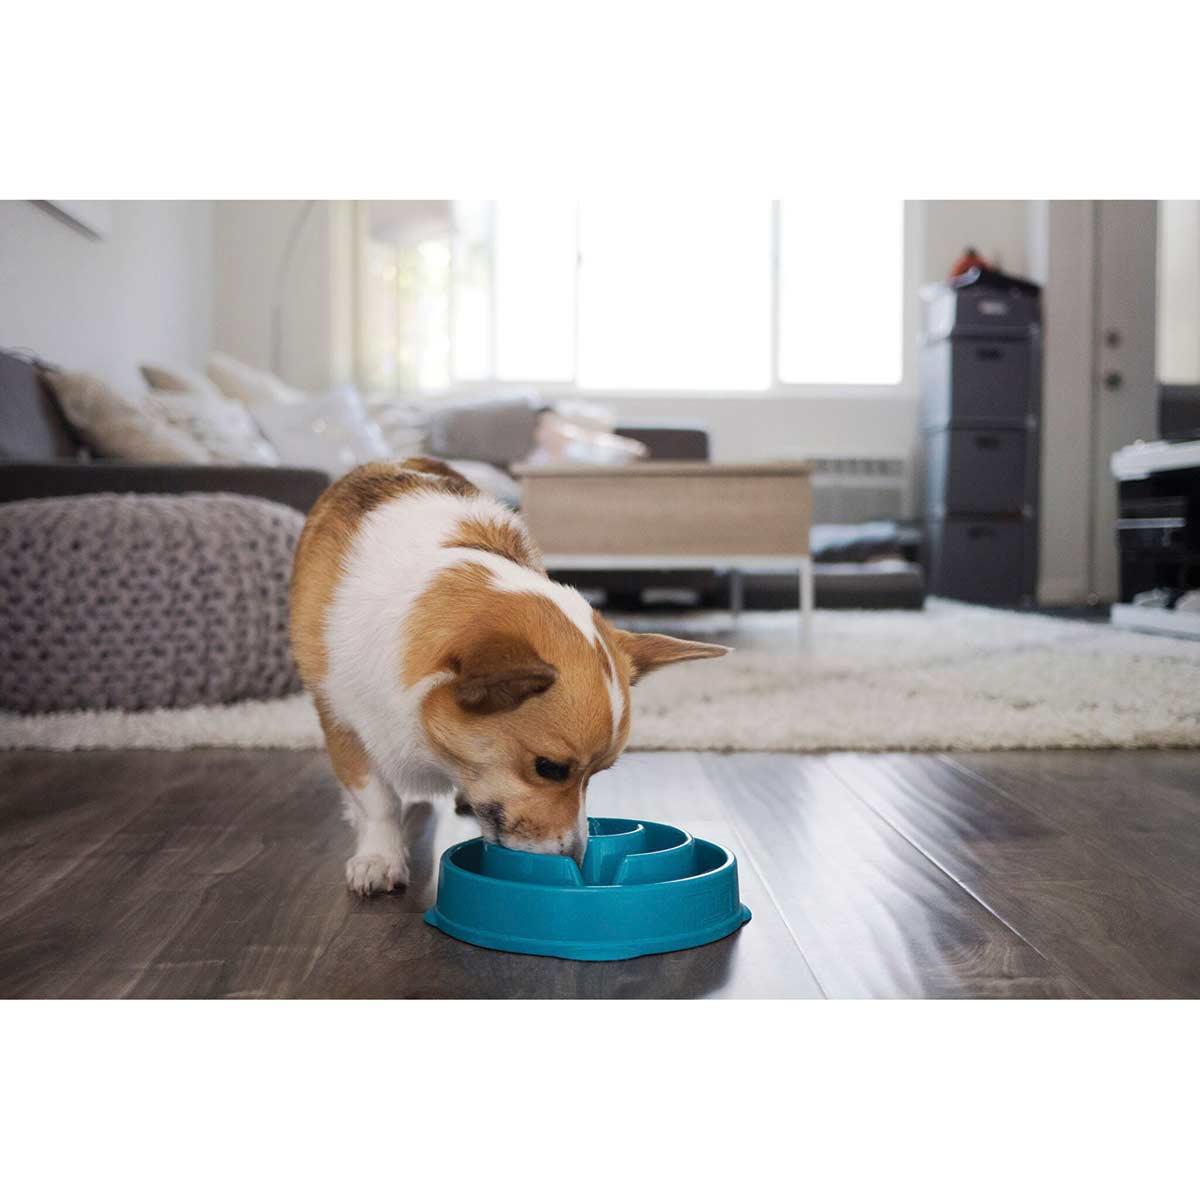 Dog using Outdoor Hound Slo-Bowl Drop Regular 12 inch